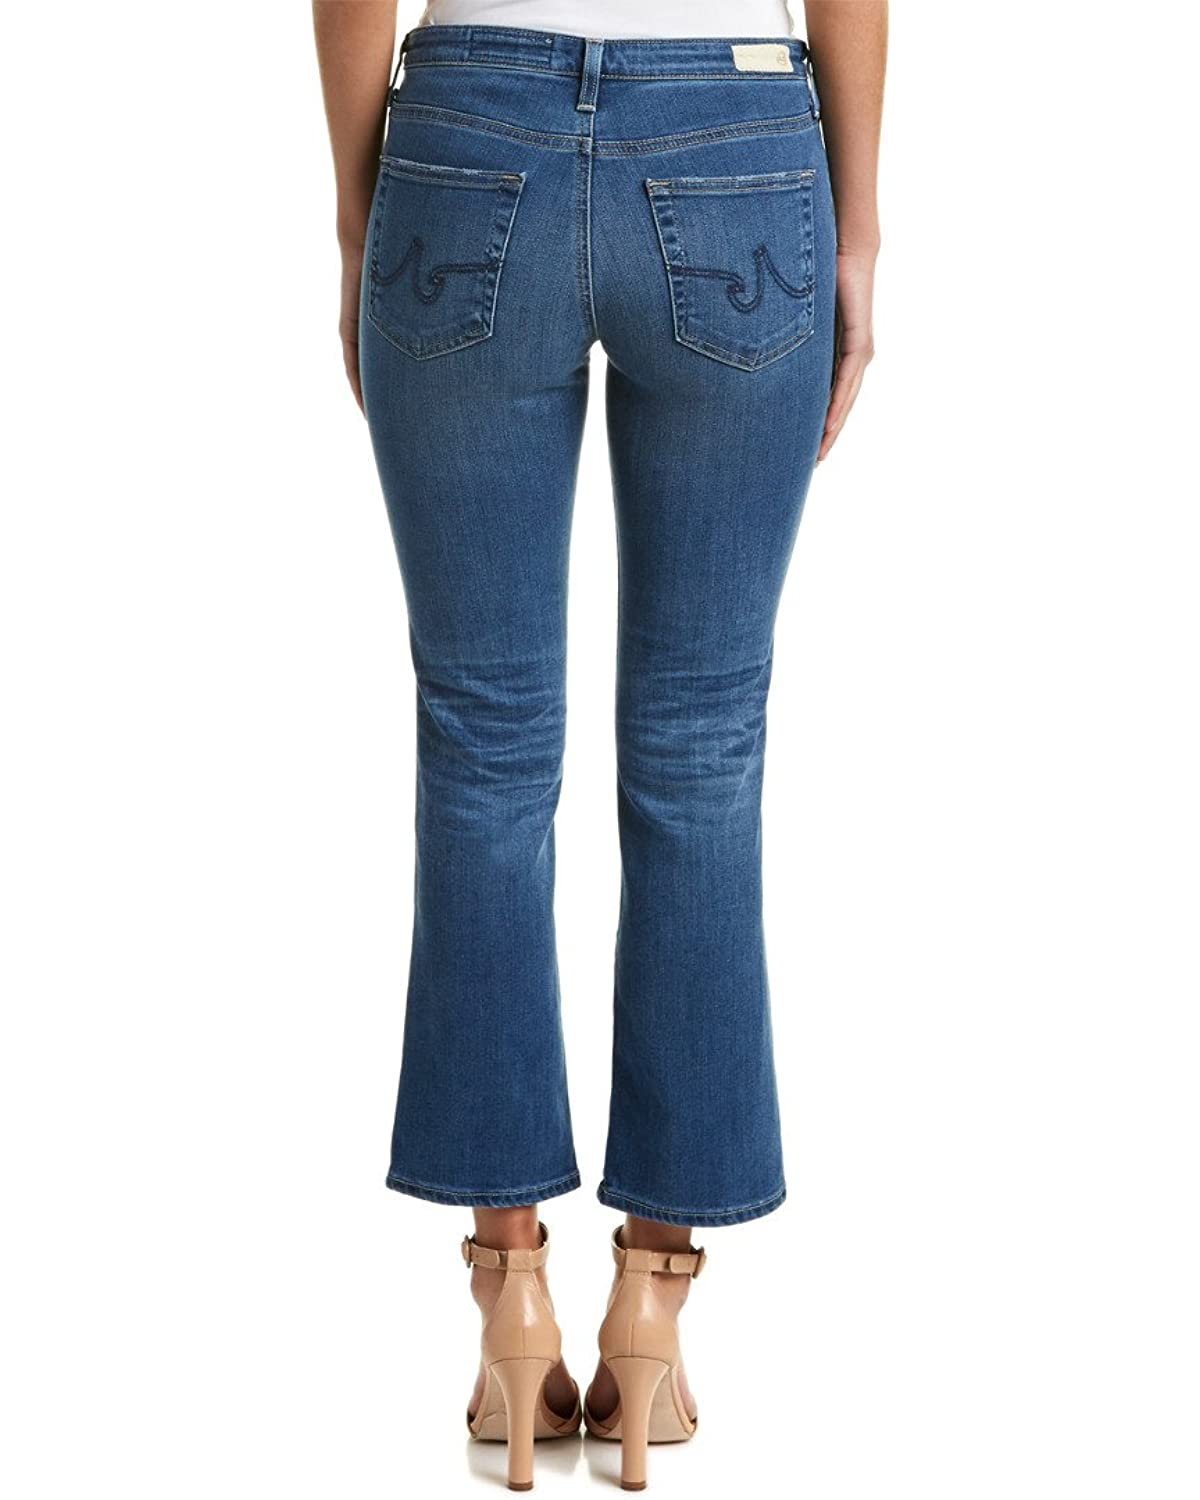 Ag Jeans The Jodie 10 Year Liberation High-Rise Slim Flare Crop